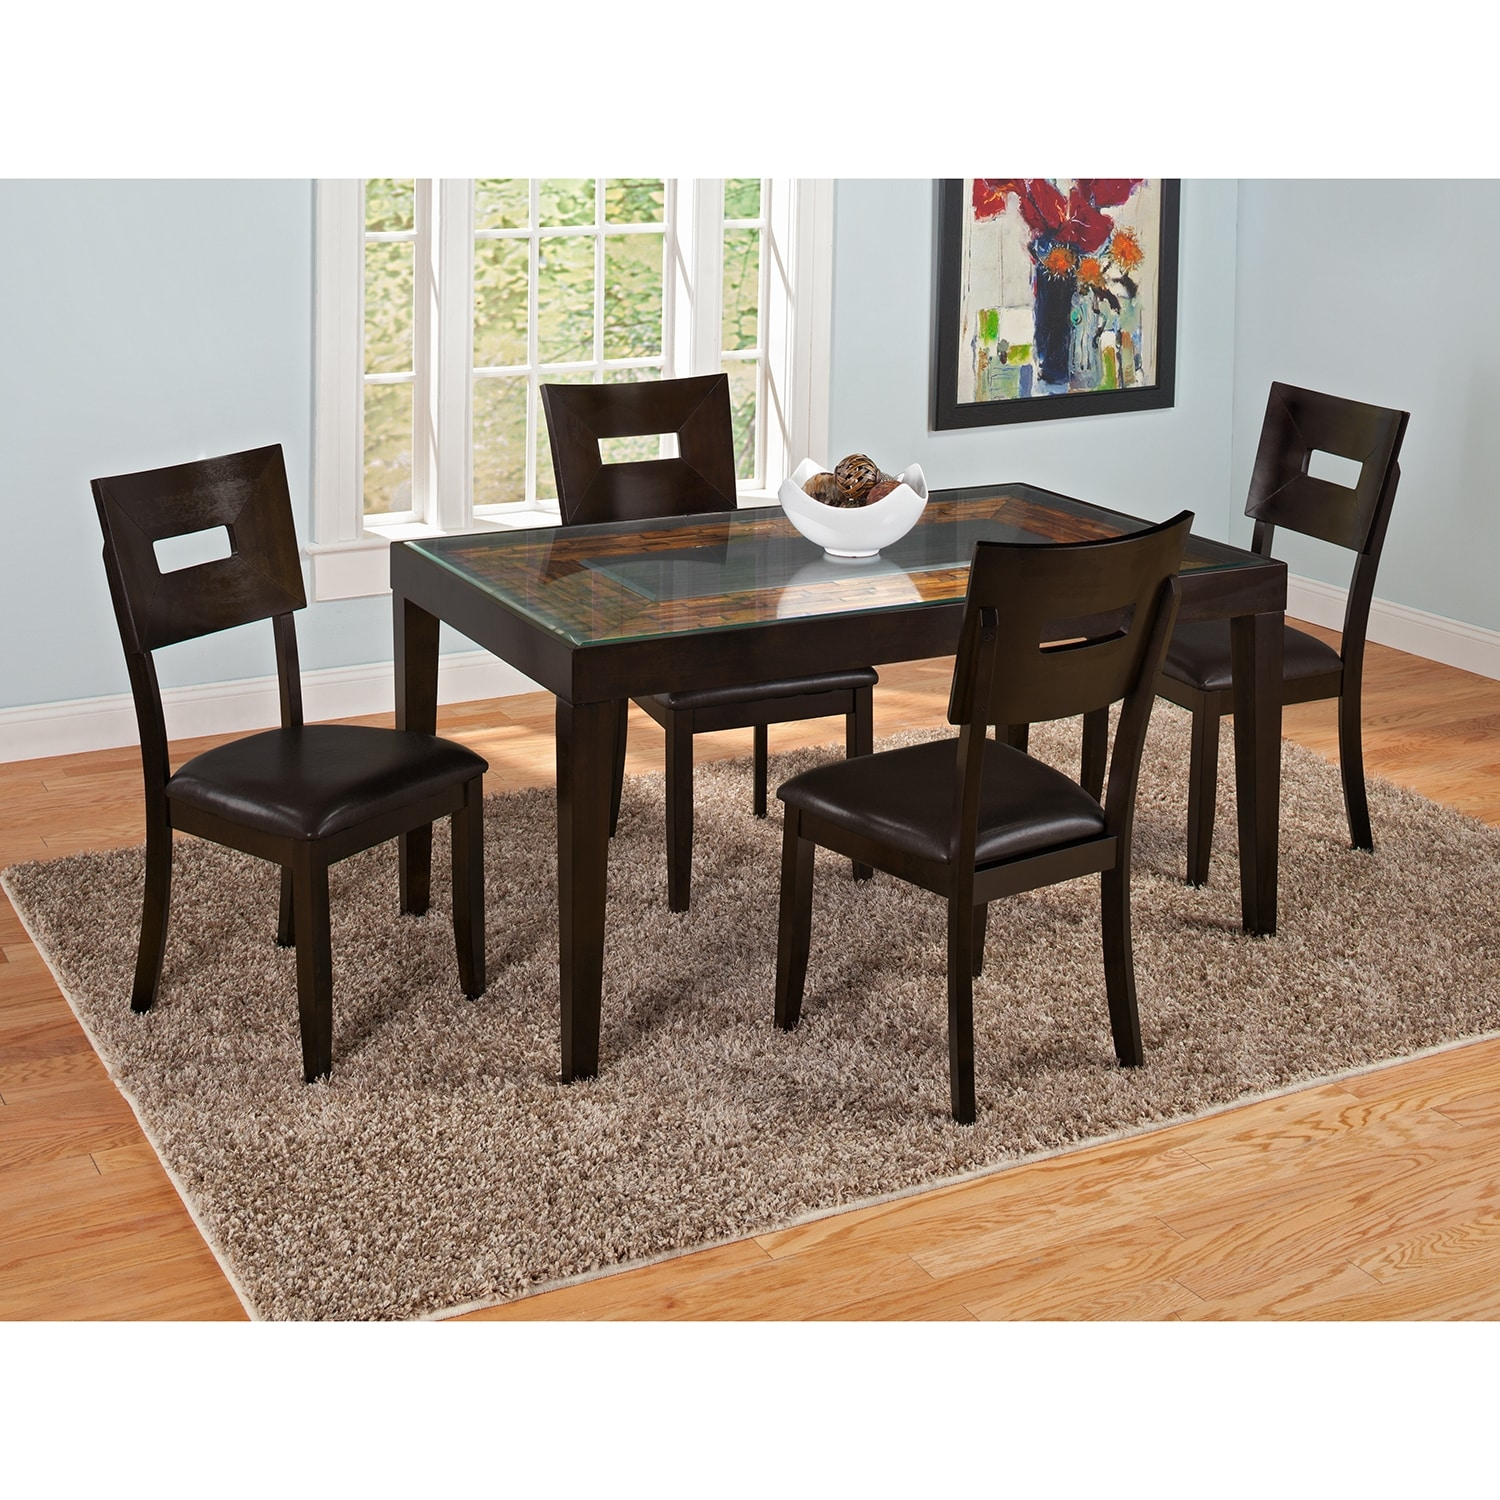 Dining Table: Value City Furniture Dining Table